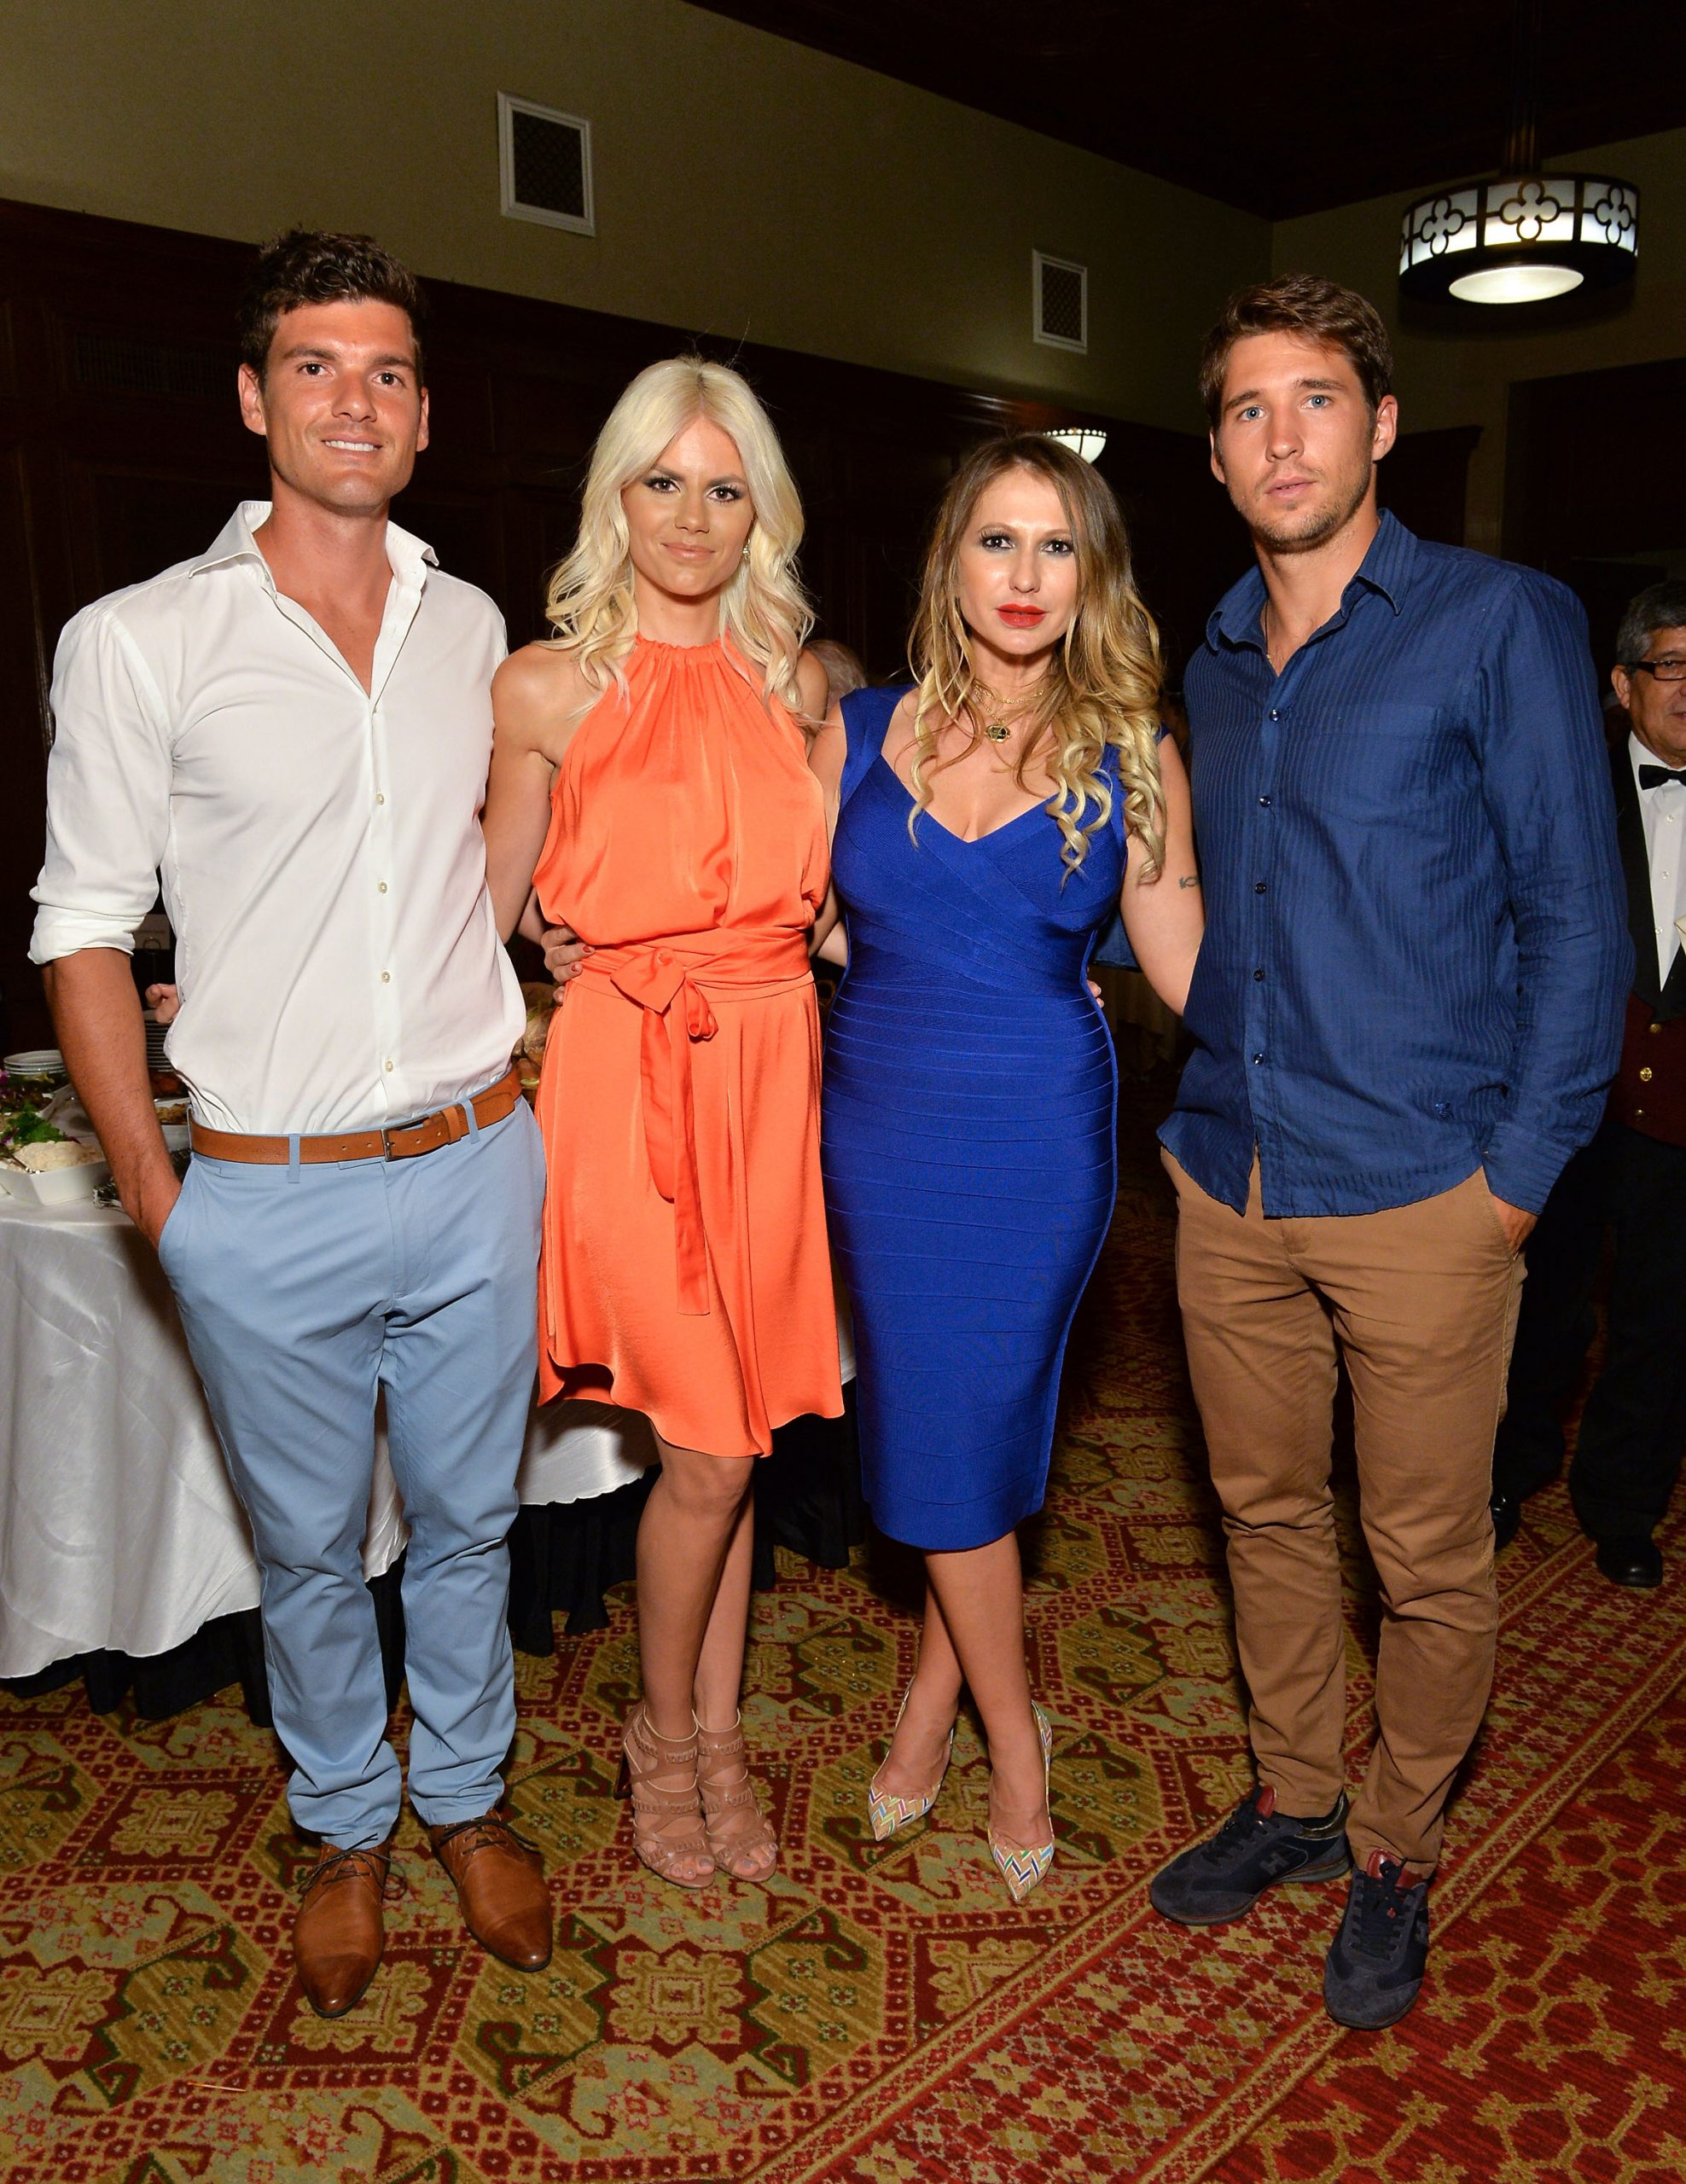 NEW YORK, NY - AUGUST 22:  (L-R) Frank Dancevic, Nikolina Bojic Dancevic, Mirjana Sladic, and Dusan Lajovic attend the Save Saint Sava Benefit at the New York Athletic Club on August 22, 2016 in New York City.  (Photo by D Dipasupil/Getty Images for Serbian Orthodox Cathedral of Saint Sava)